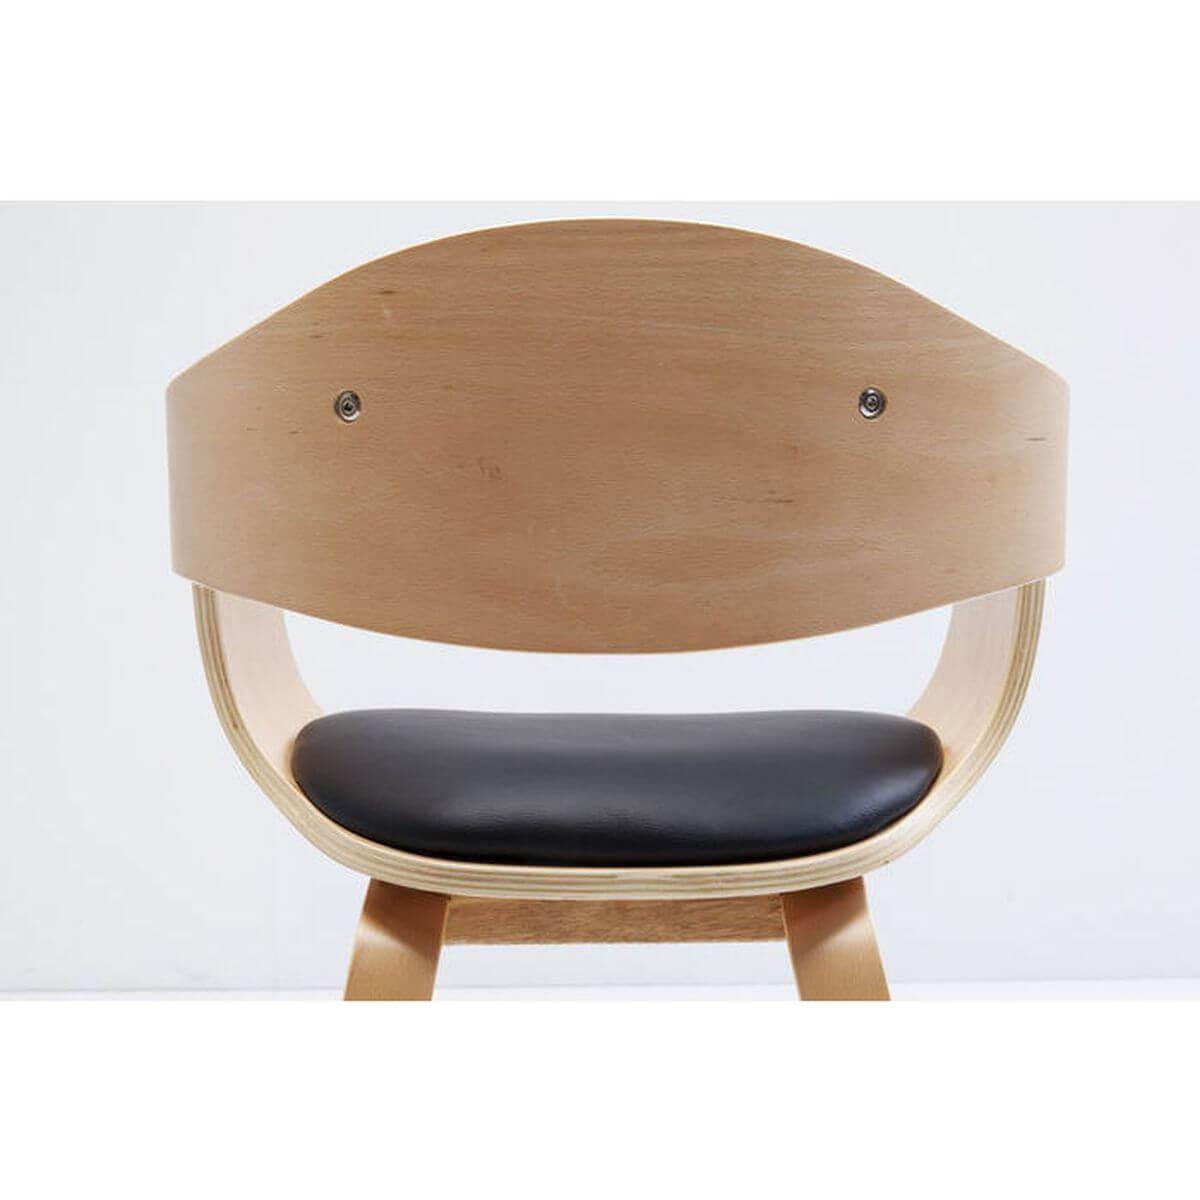 Chaise accoudoirs COSTA Kare Design brun hêtre